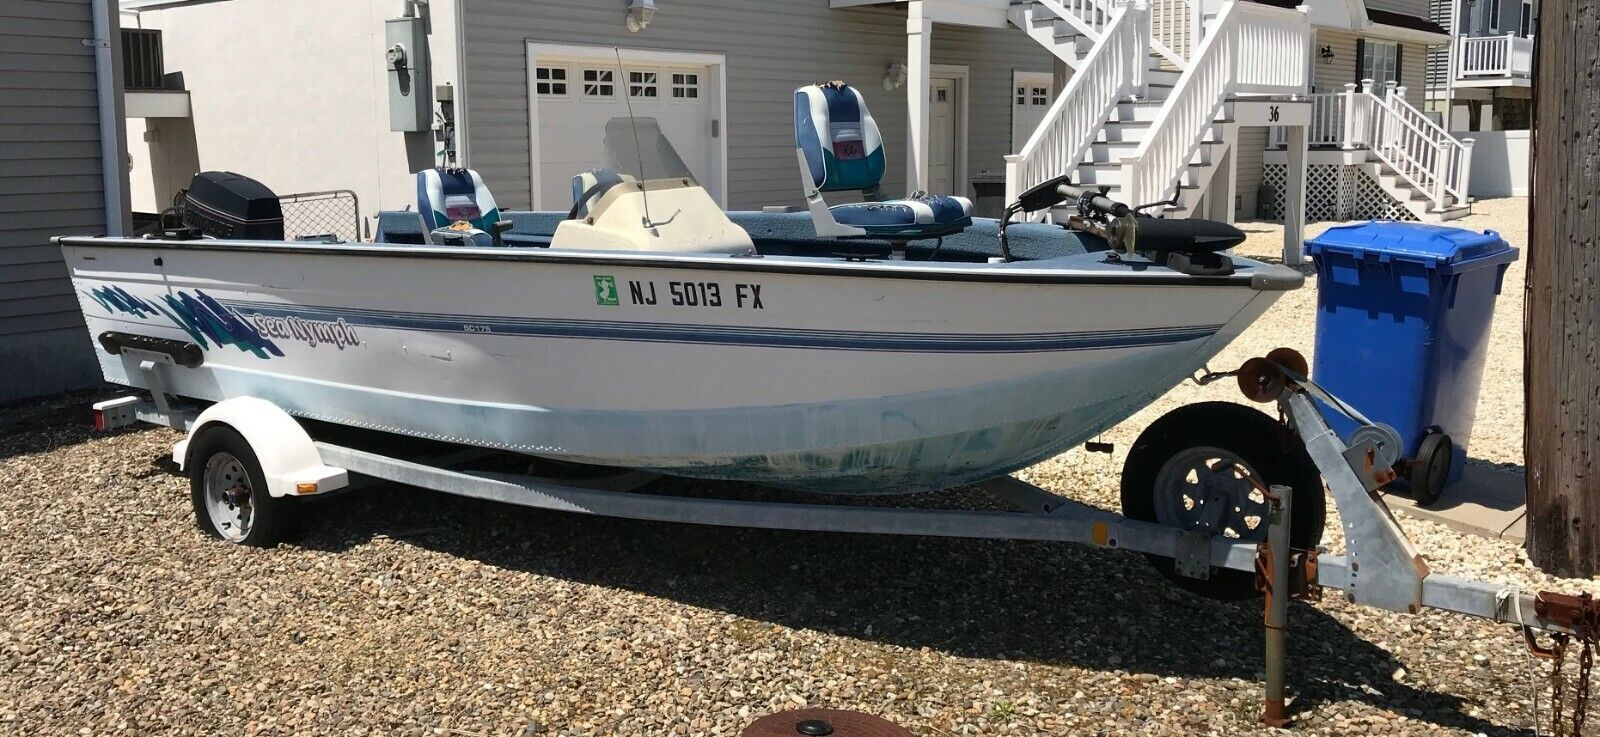 1994 Sea Nymph SC175 17' Aluminum Boat & Trailer - New Jersey